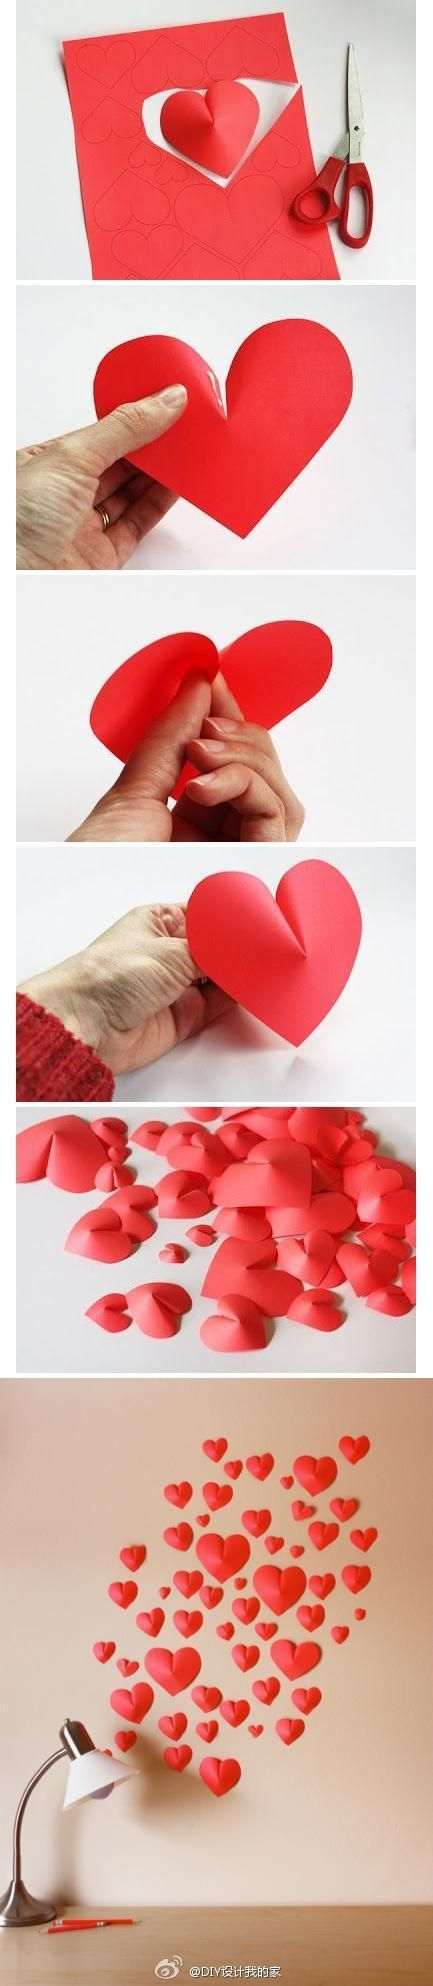 DIY Make a 3D Paper Heart for cute decorations- Usse them as confetti or hang them on strings and attach to the ceiling too!